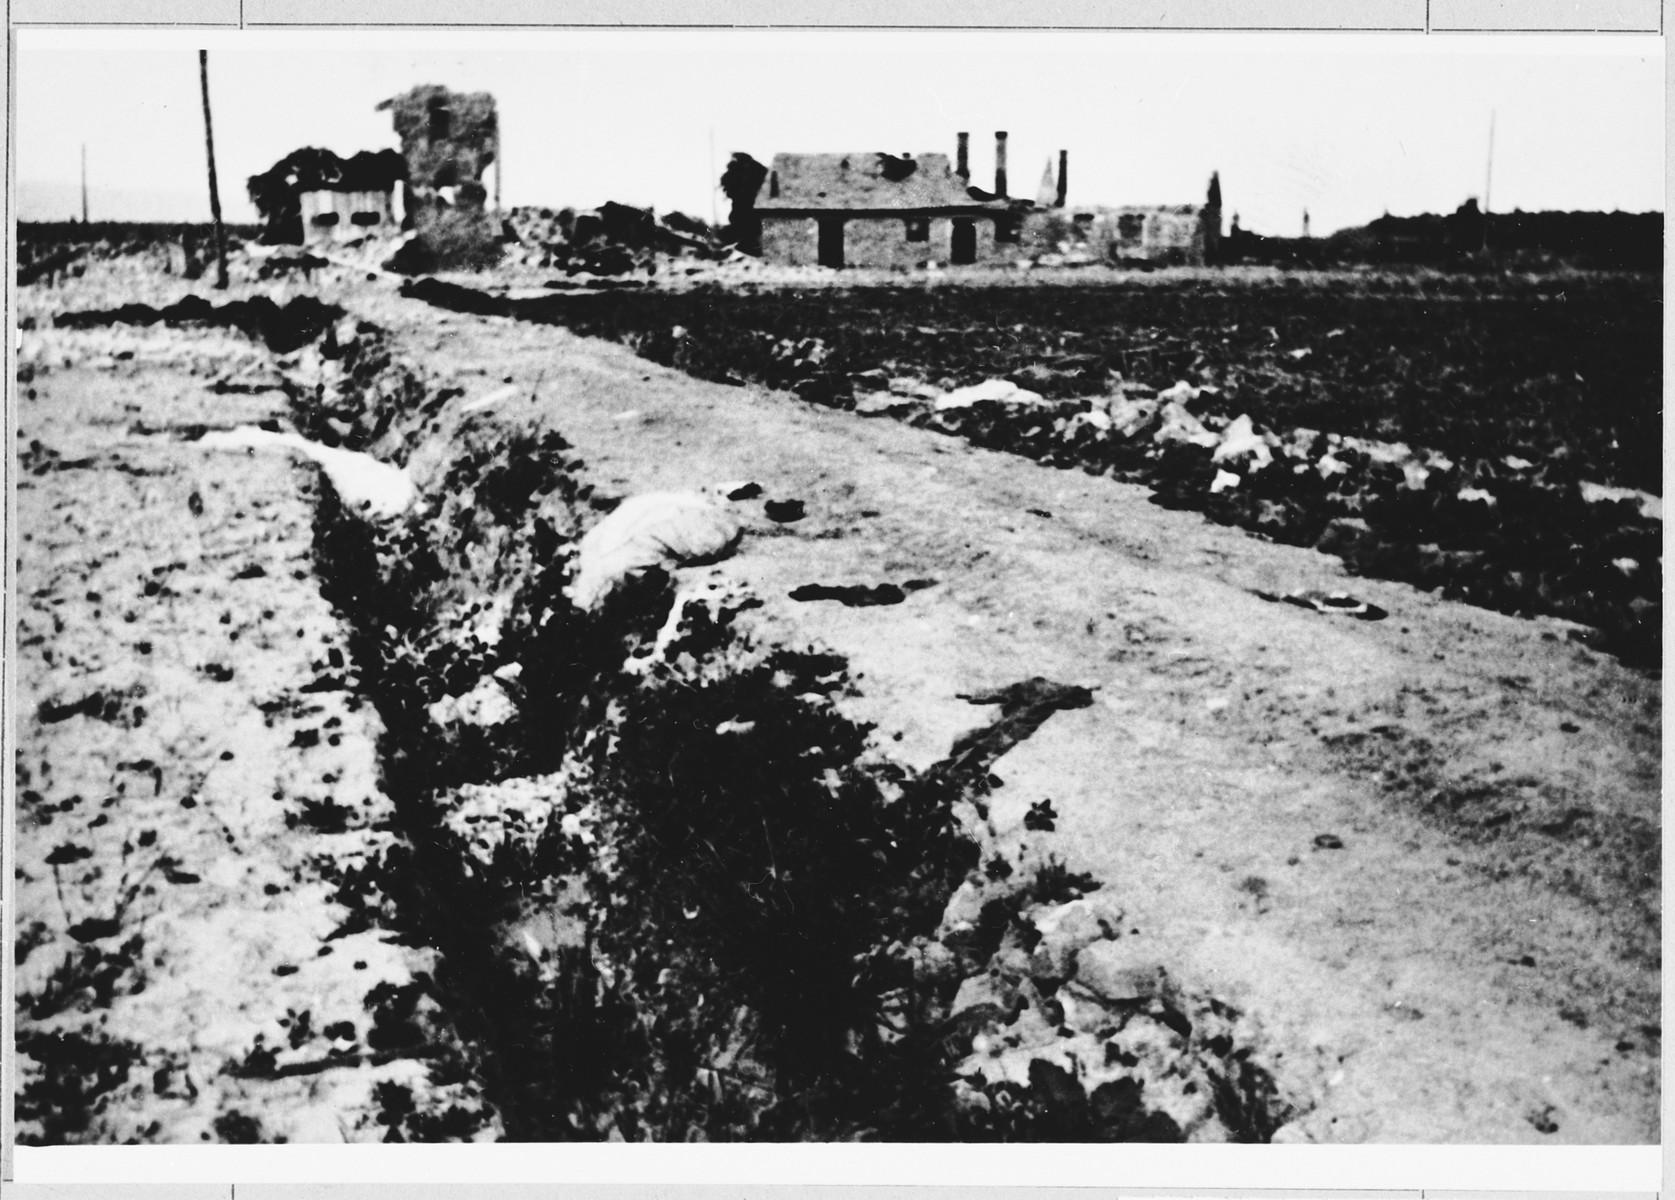 Clothing is strewn along the road leading to one of the Jasenovac concentration camps.    On April 21, 1945 a group of female prisoners were taken out on this road.  Knowing that they were to be killed, the women threw off their clothing.